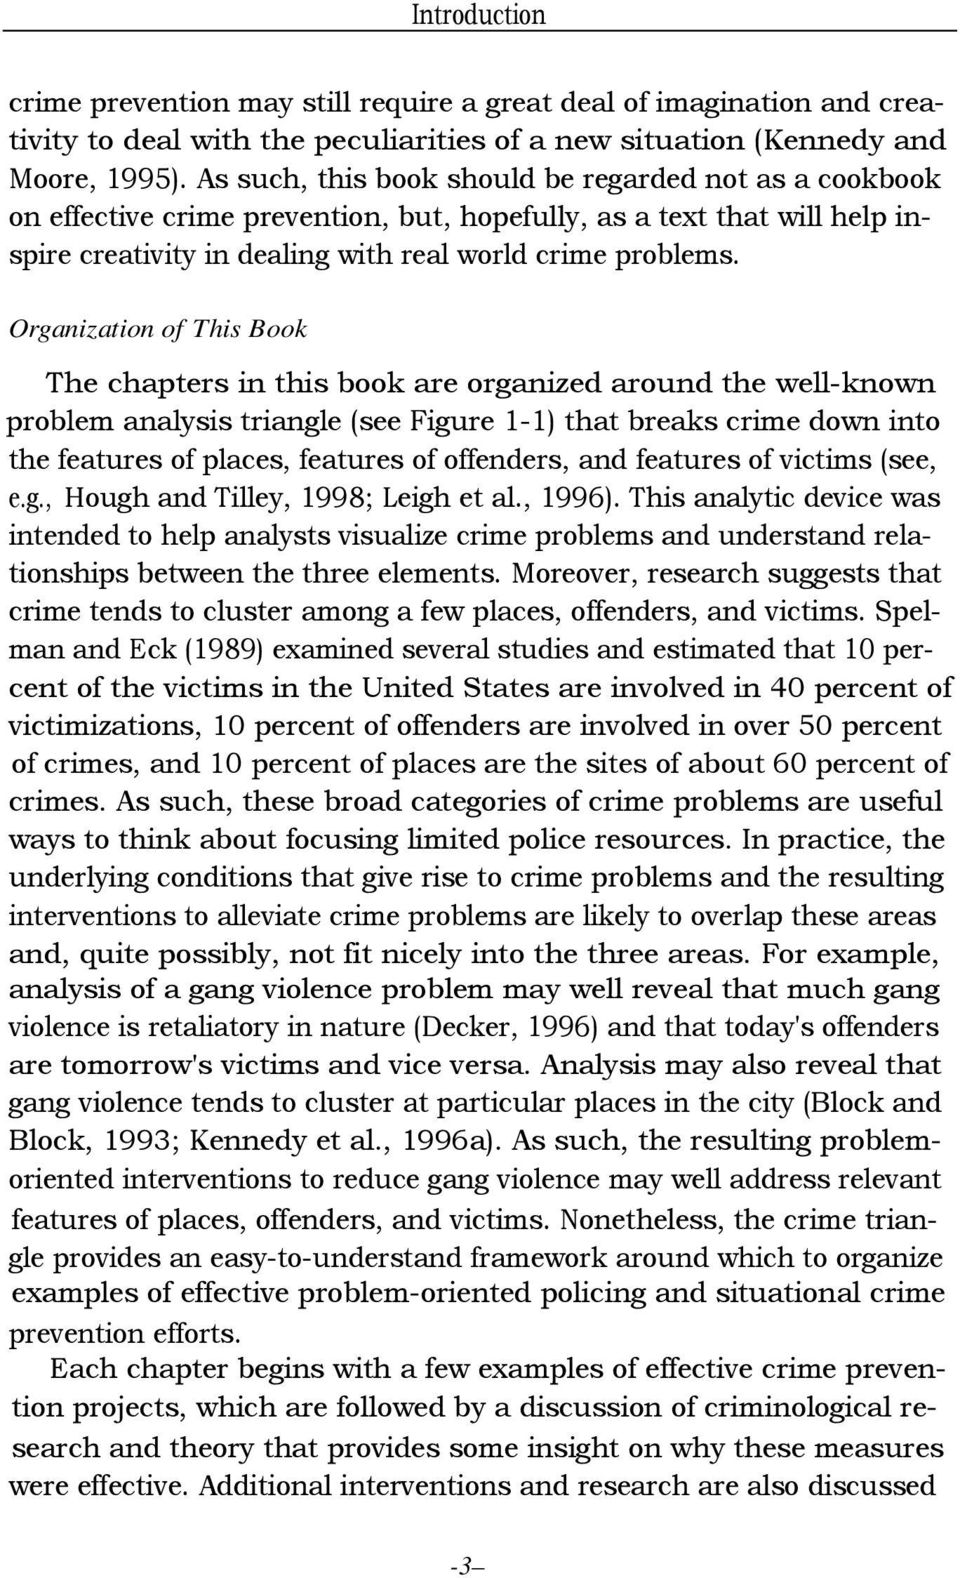 Organization of This Book The chapters in this book are organized around the well-known problem analysis triangle (see Figure 1-1) that breaks crime down into the features of places, features of